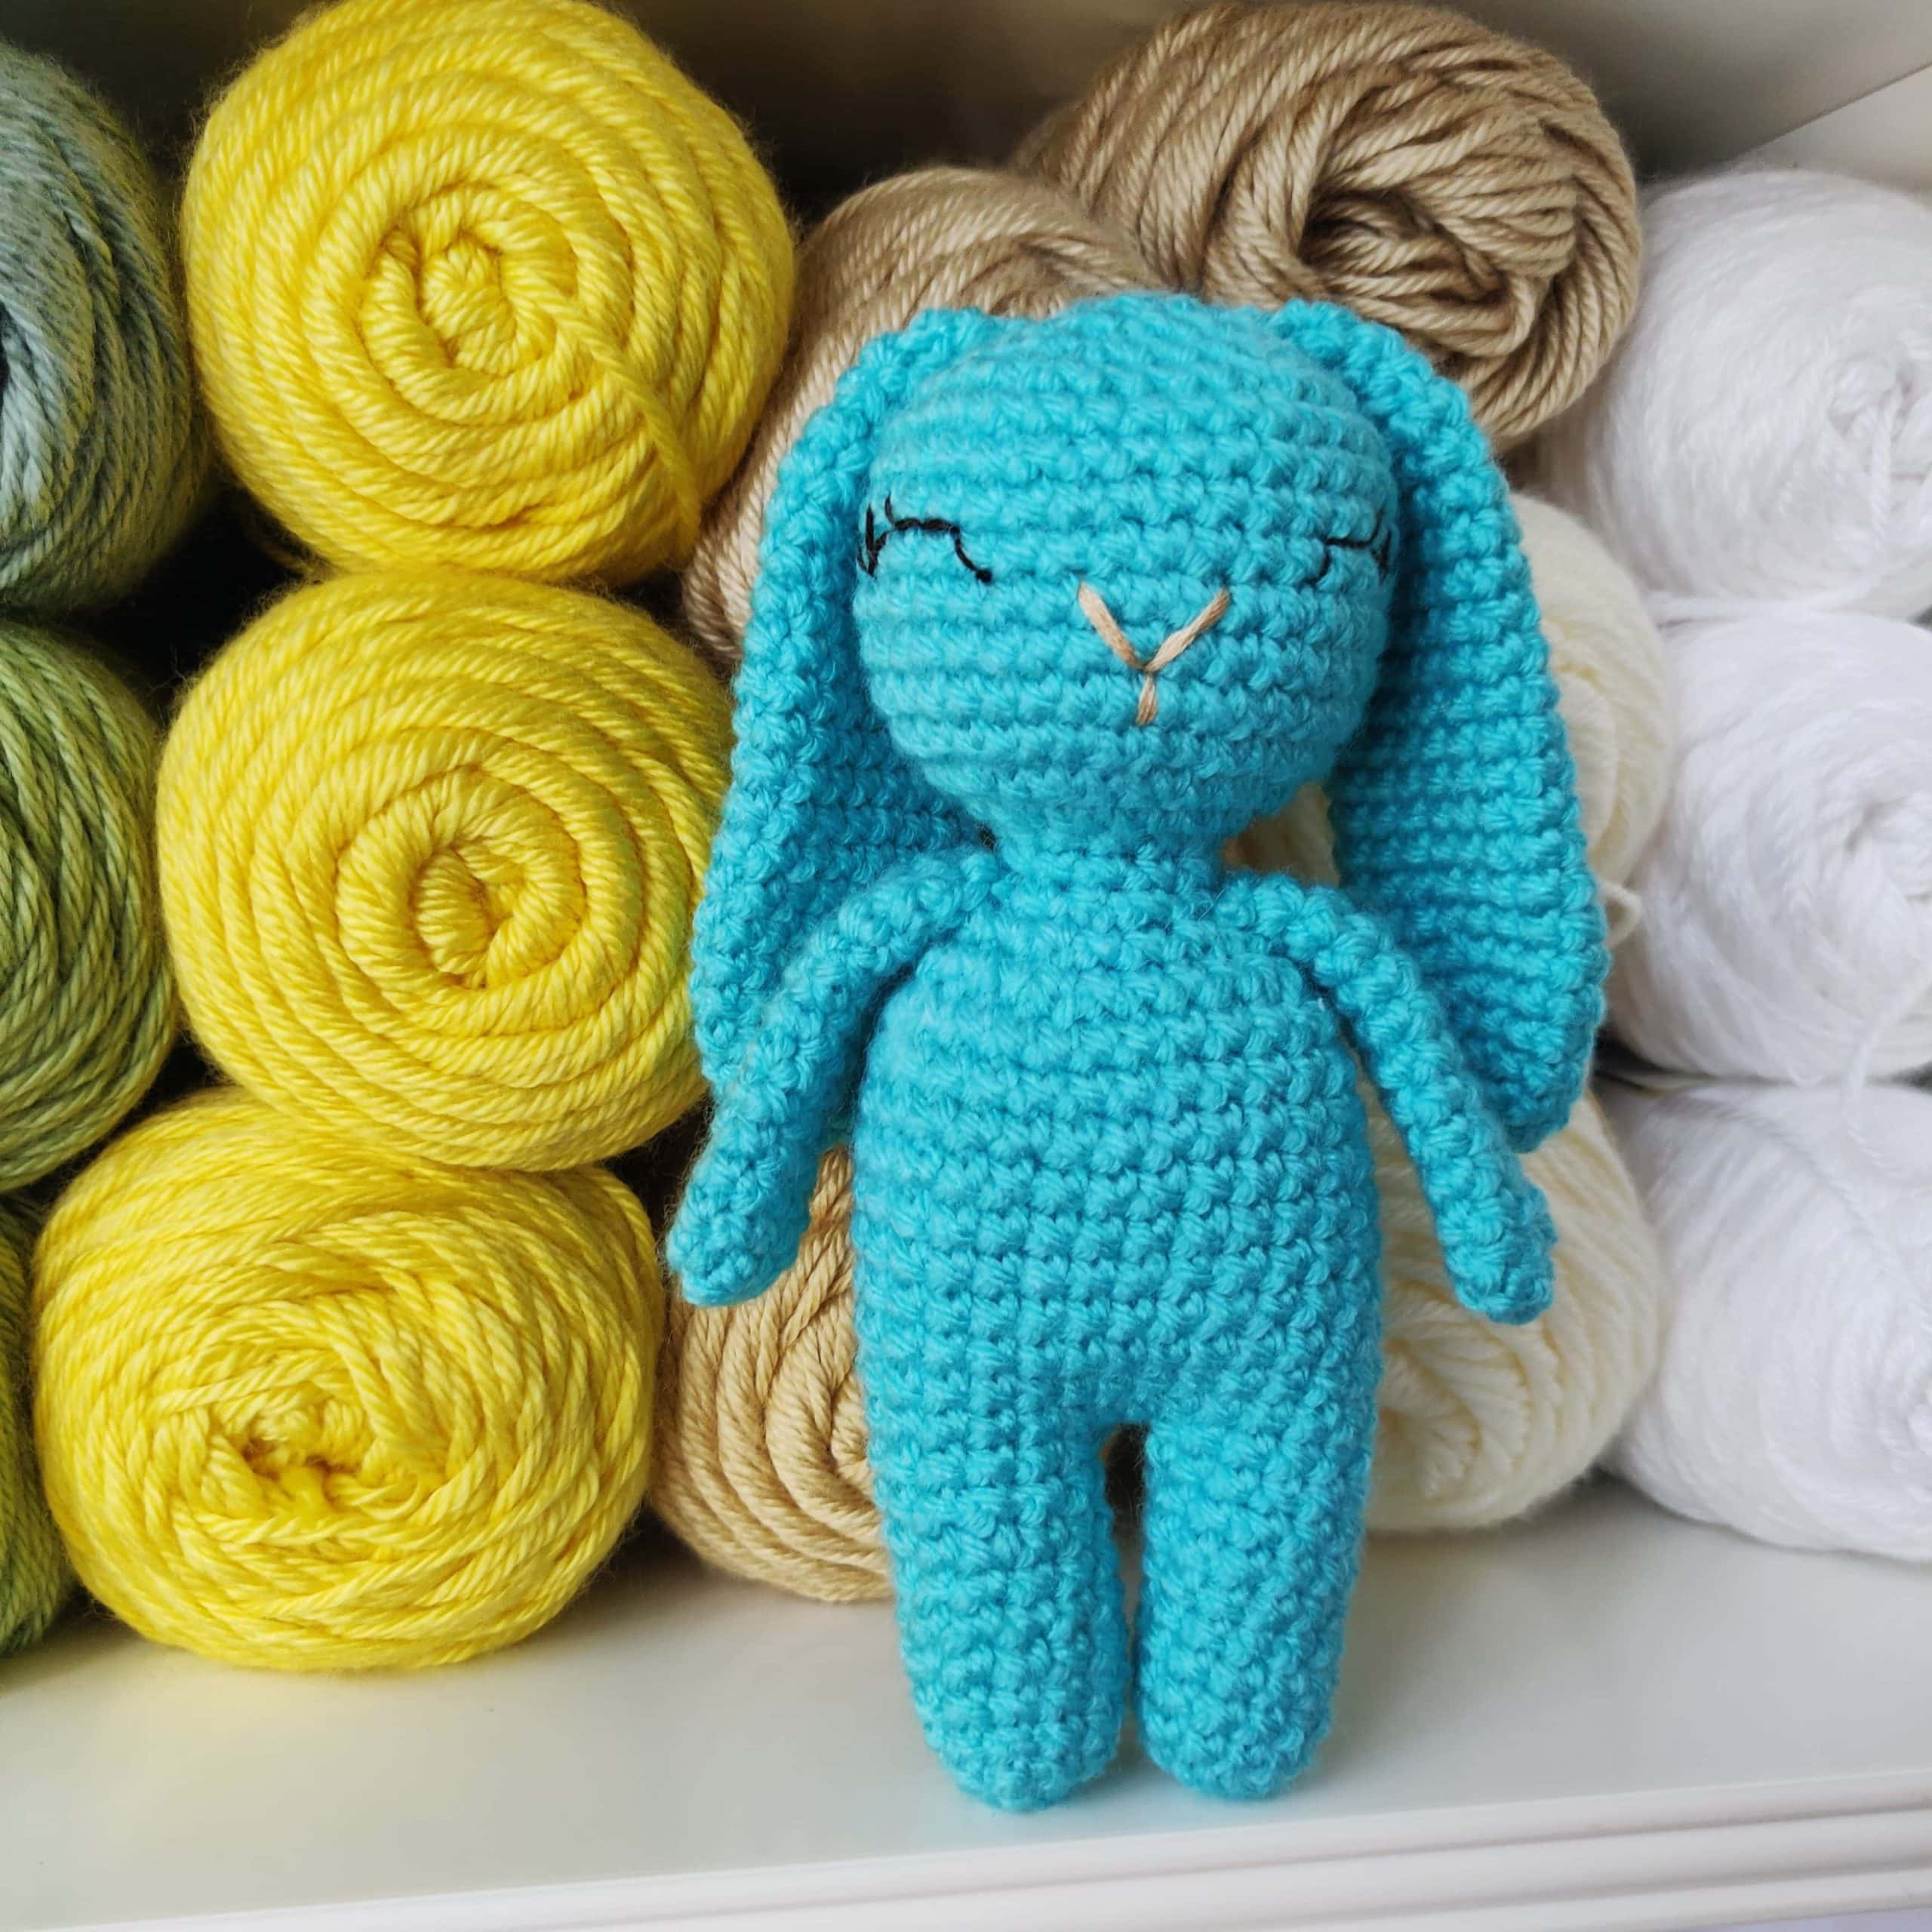 Small blue crochet bunny with closed eyes.